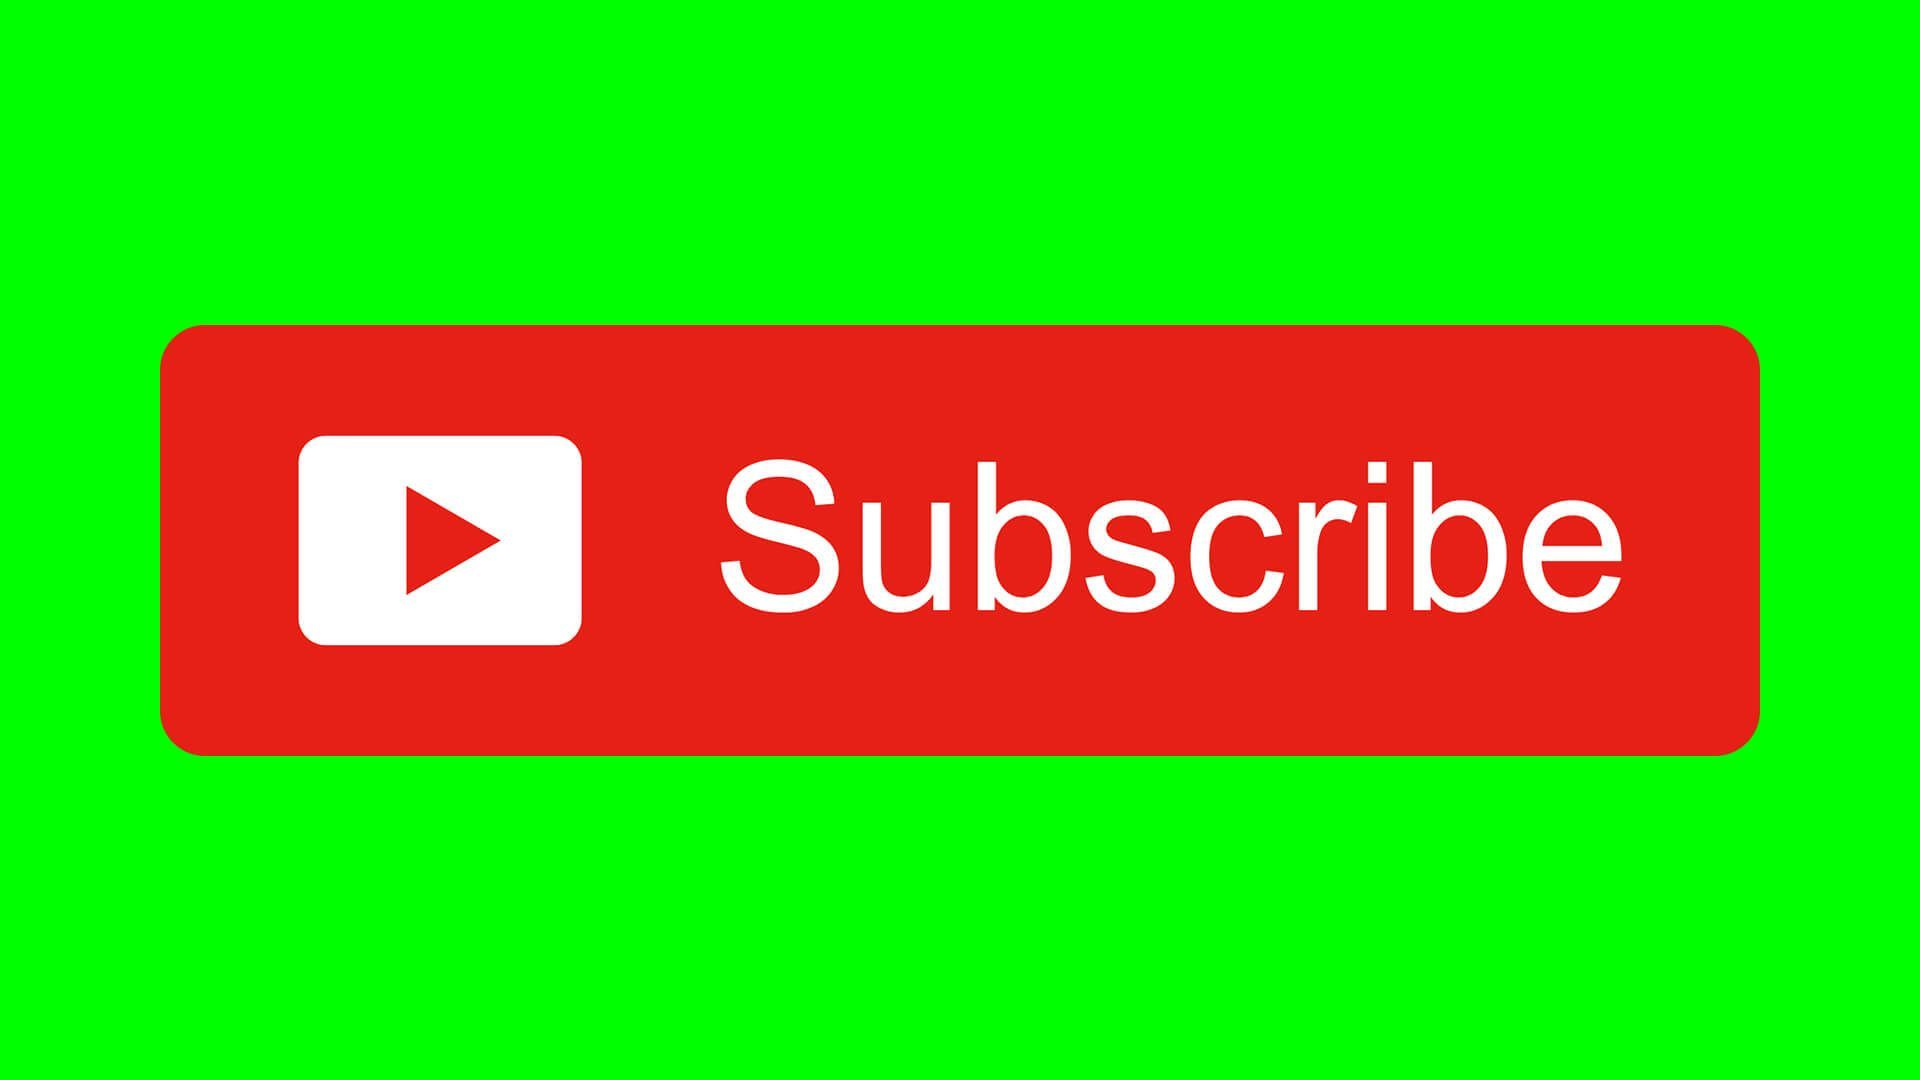 Fundamental tips for improving free   YouTube subscribers